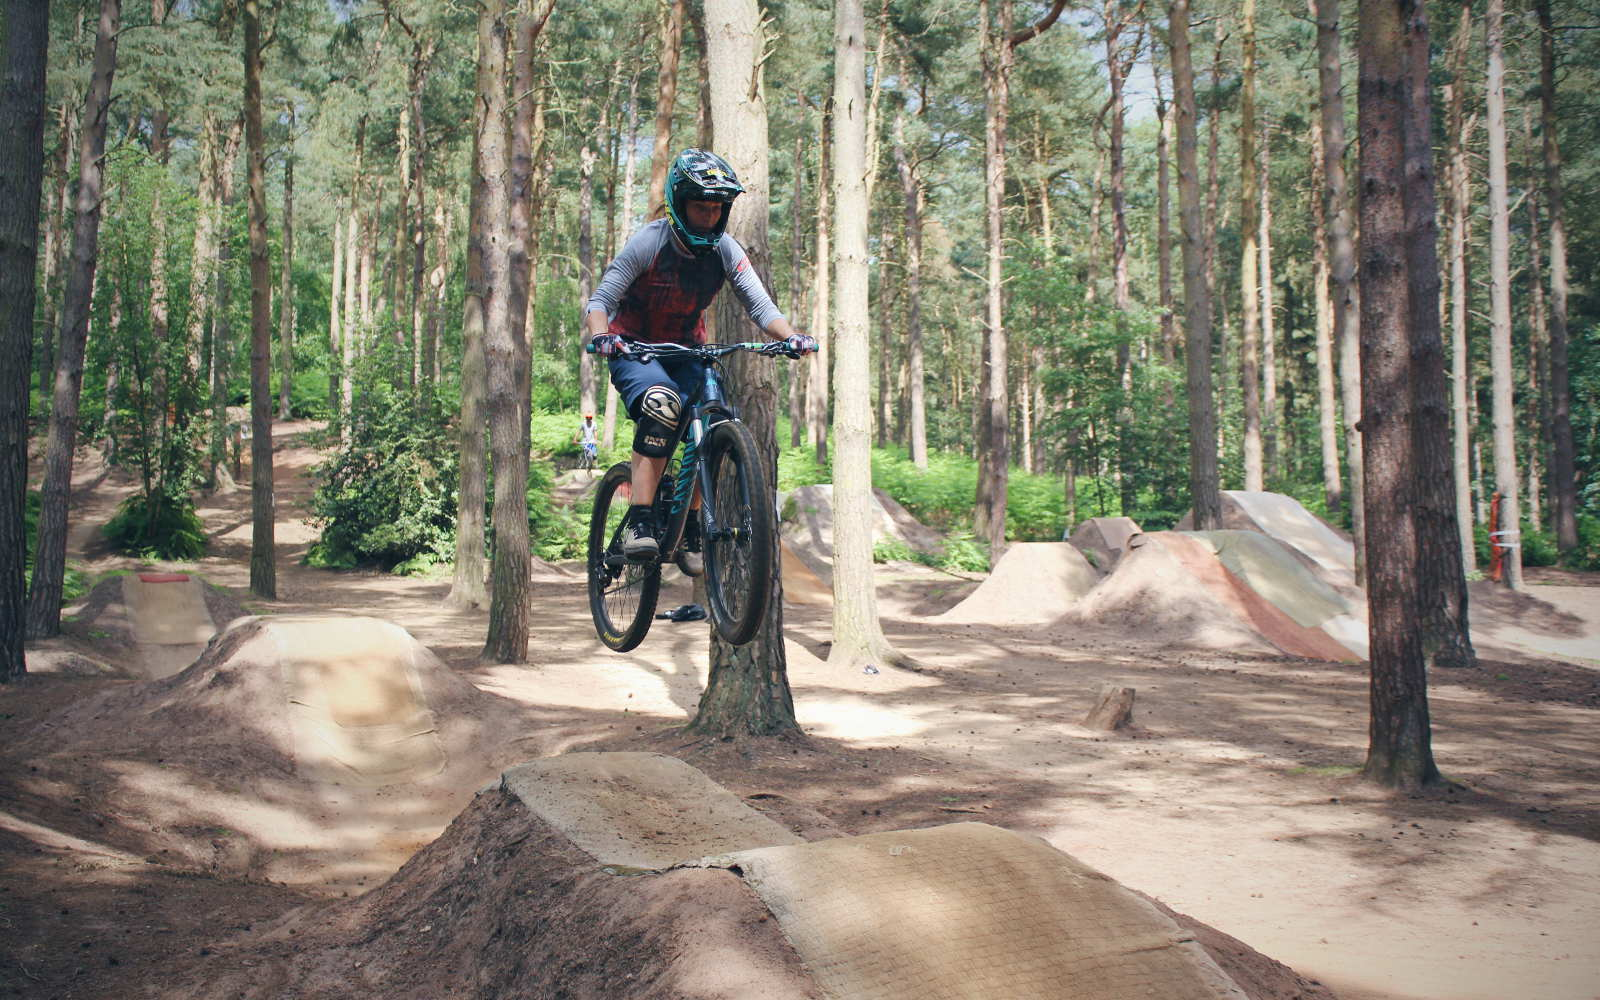 Dirt jumping table top line at Chicksands bike park with mountain bike